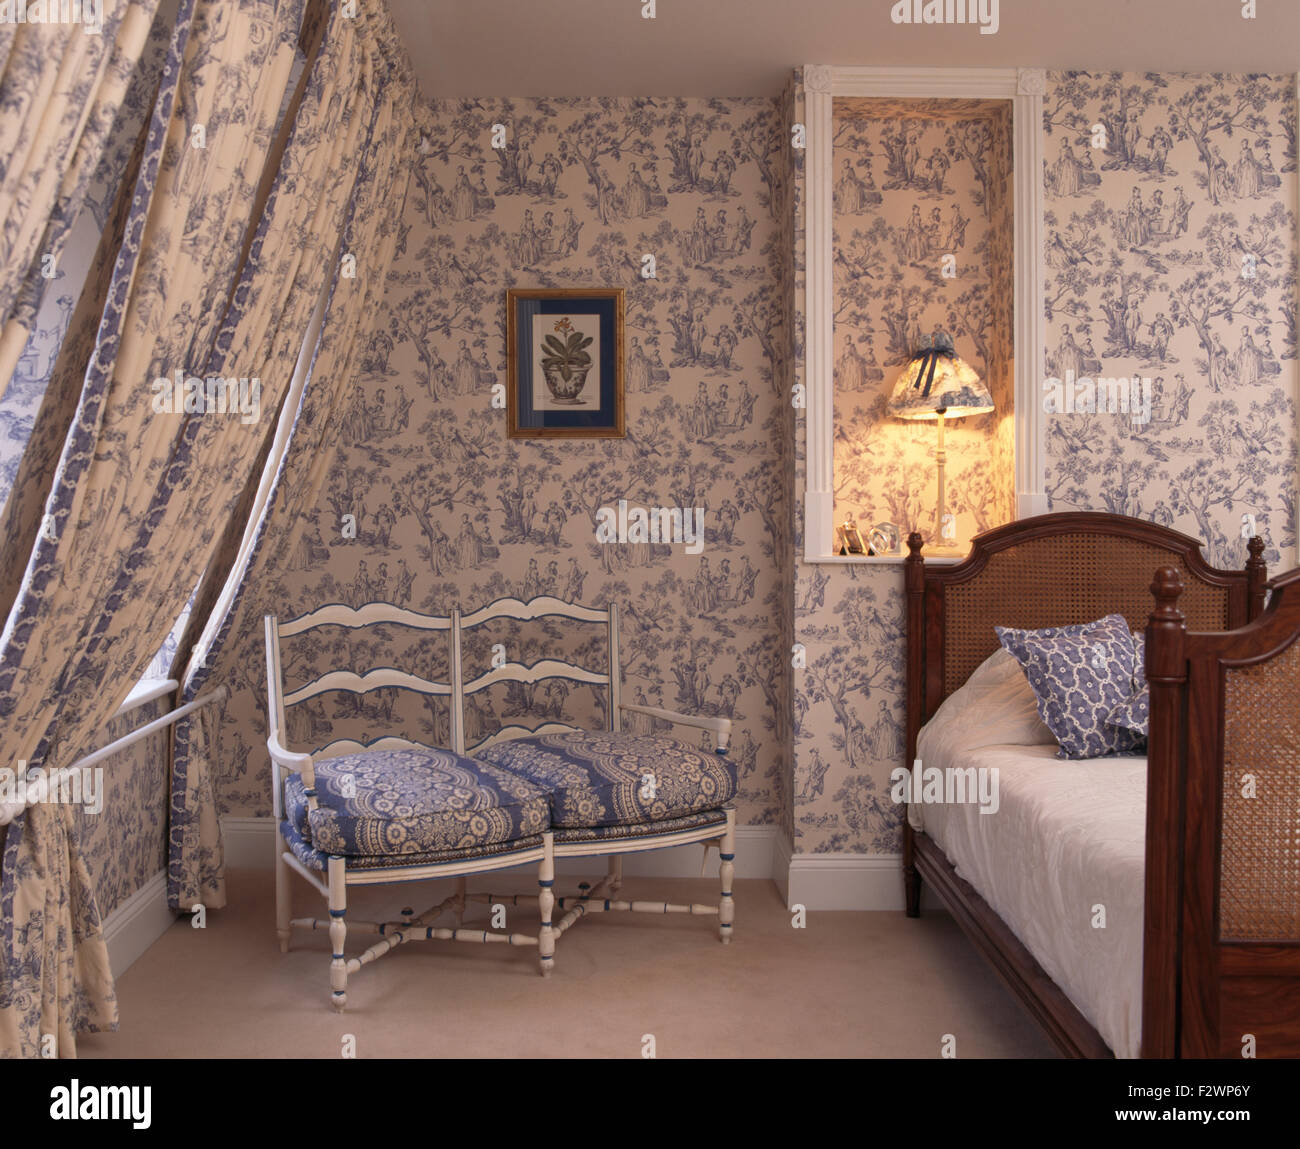 Blue Toile De Jouy Wallpaper And Matching Drapes In Townhouse Bedroom With  A White Wooden Sofa